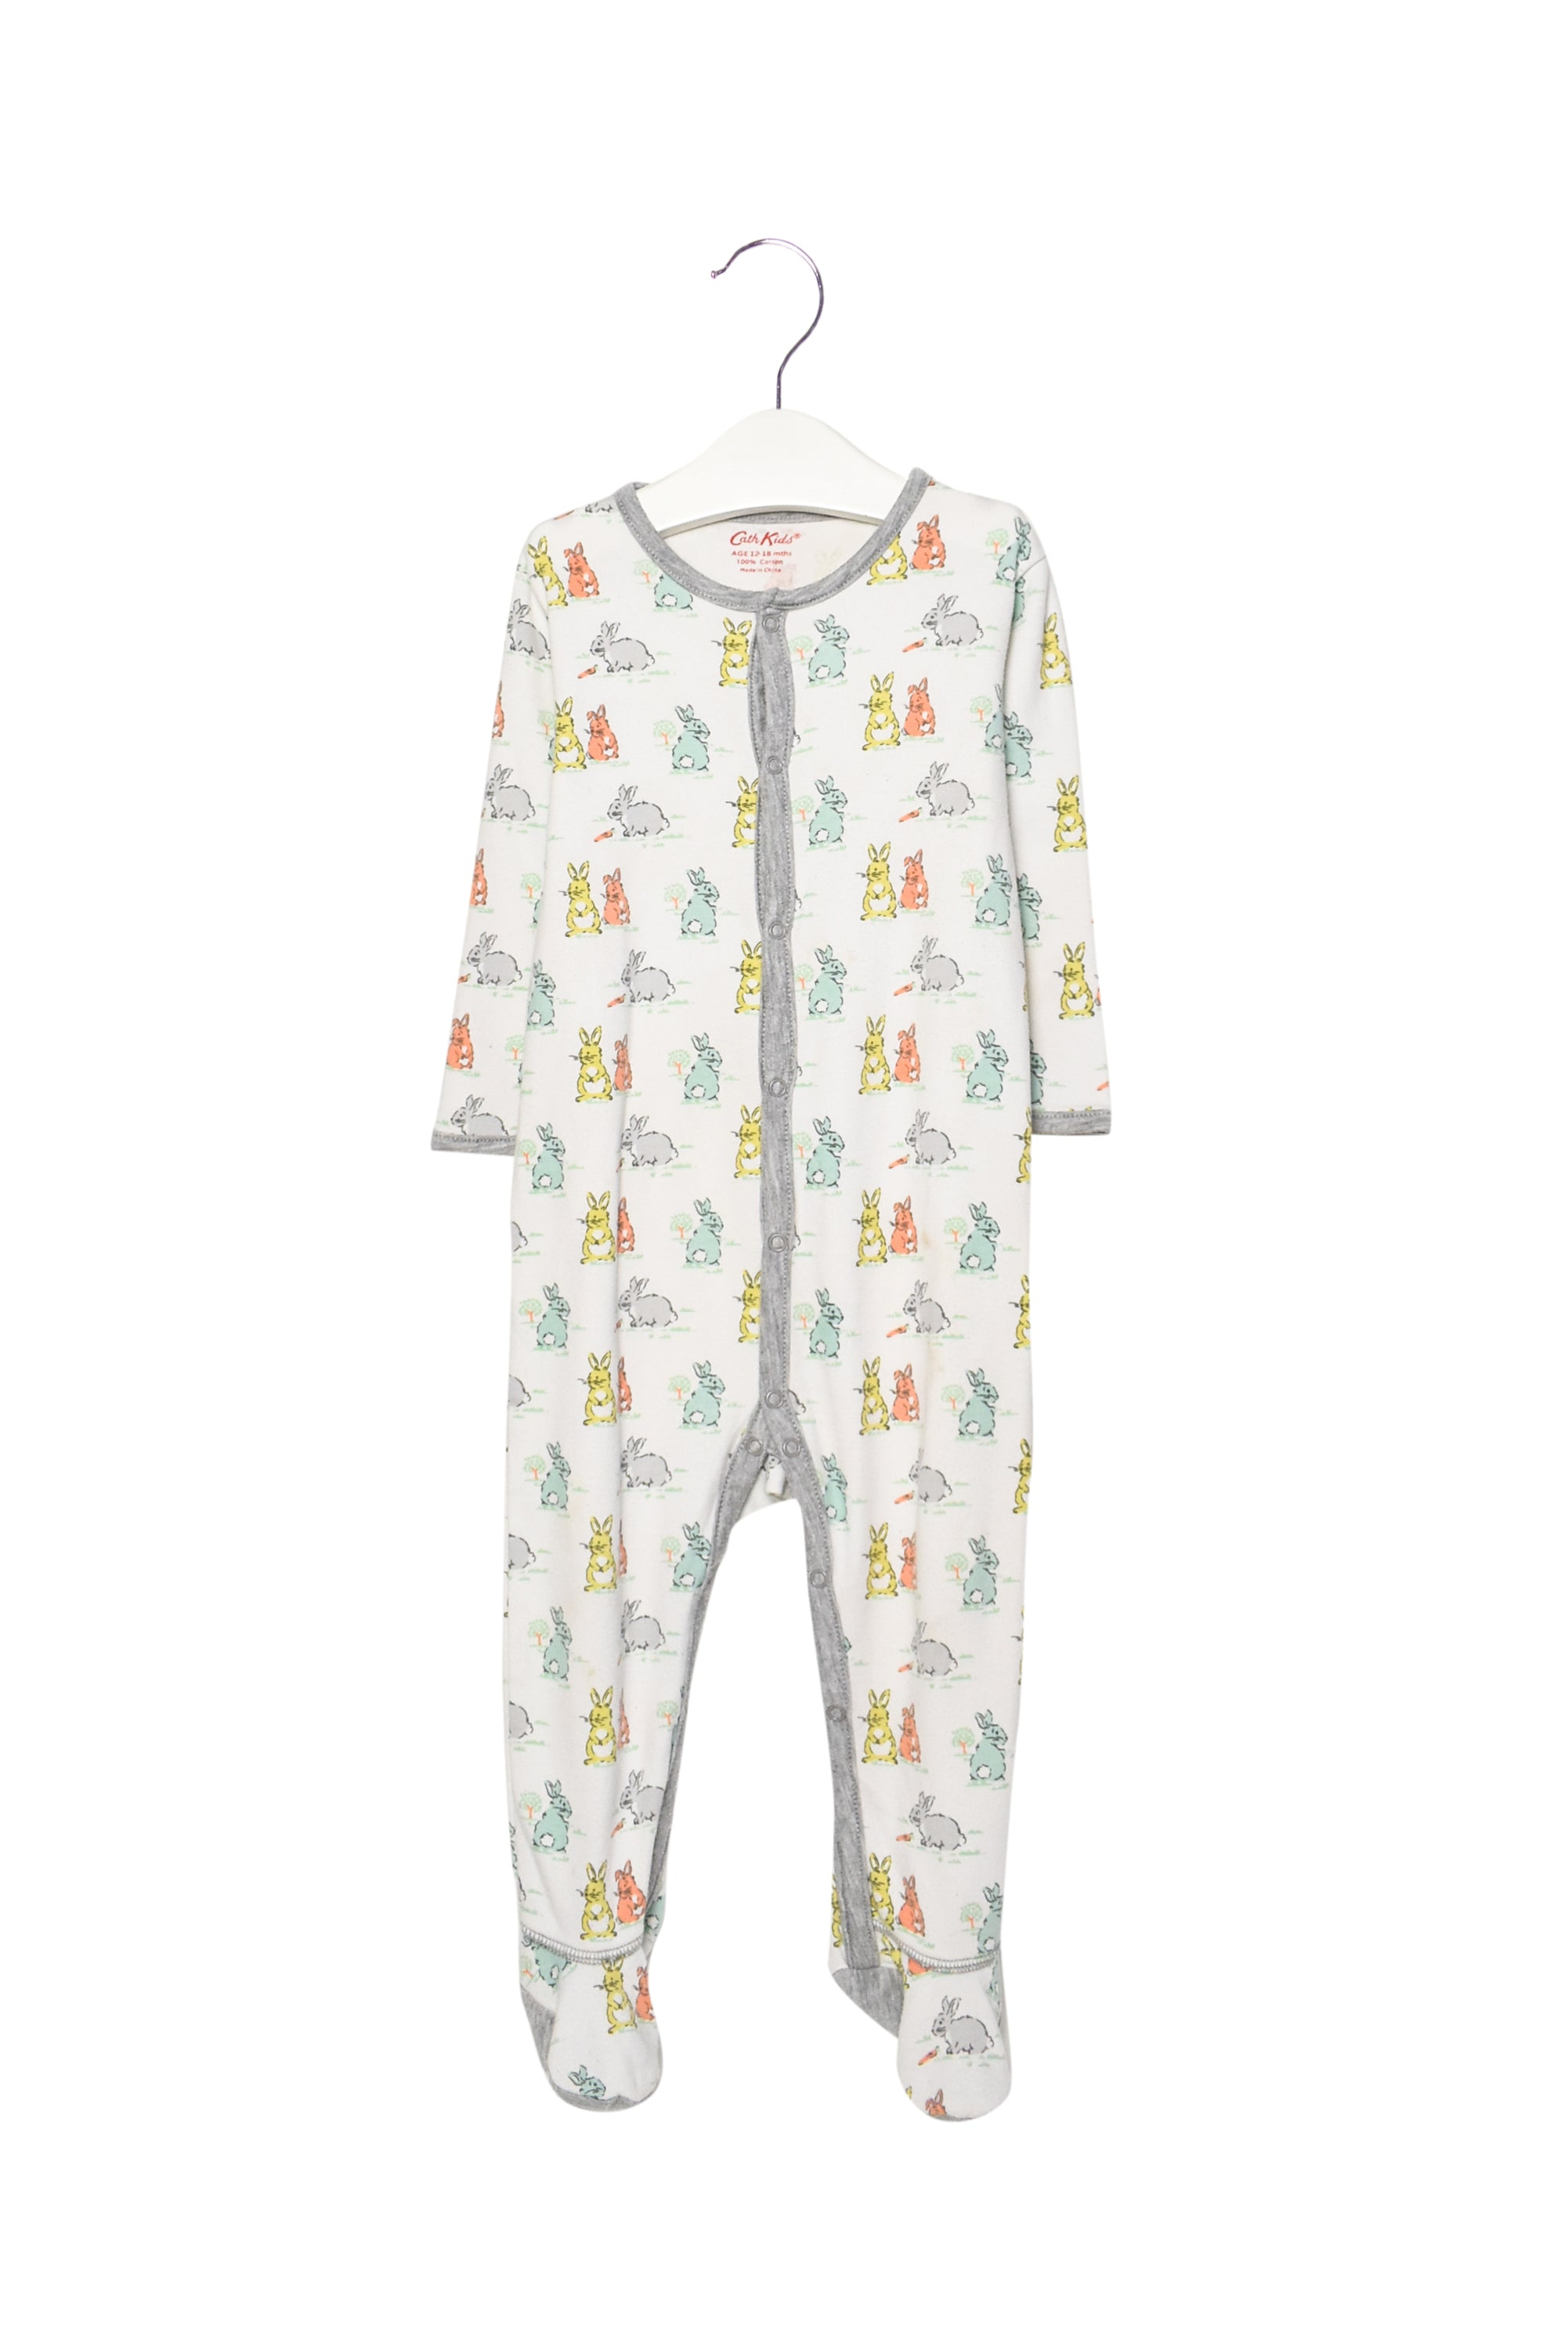 10011922 Cath Kidston Baby ~ Jumpsuit 12-18M at Retykle